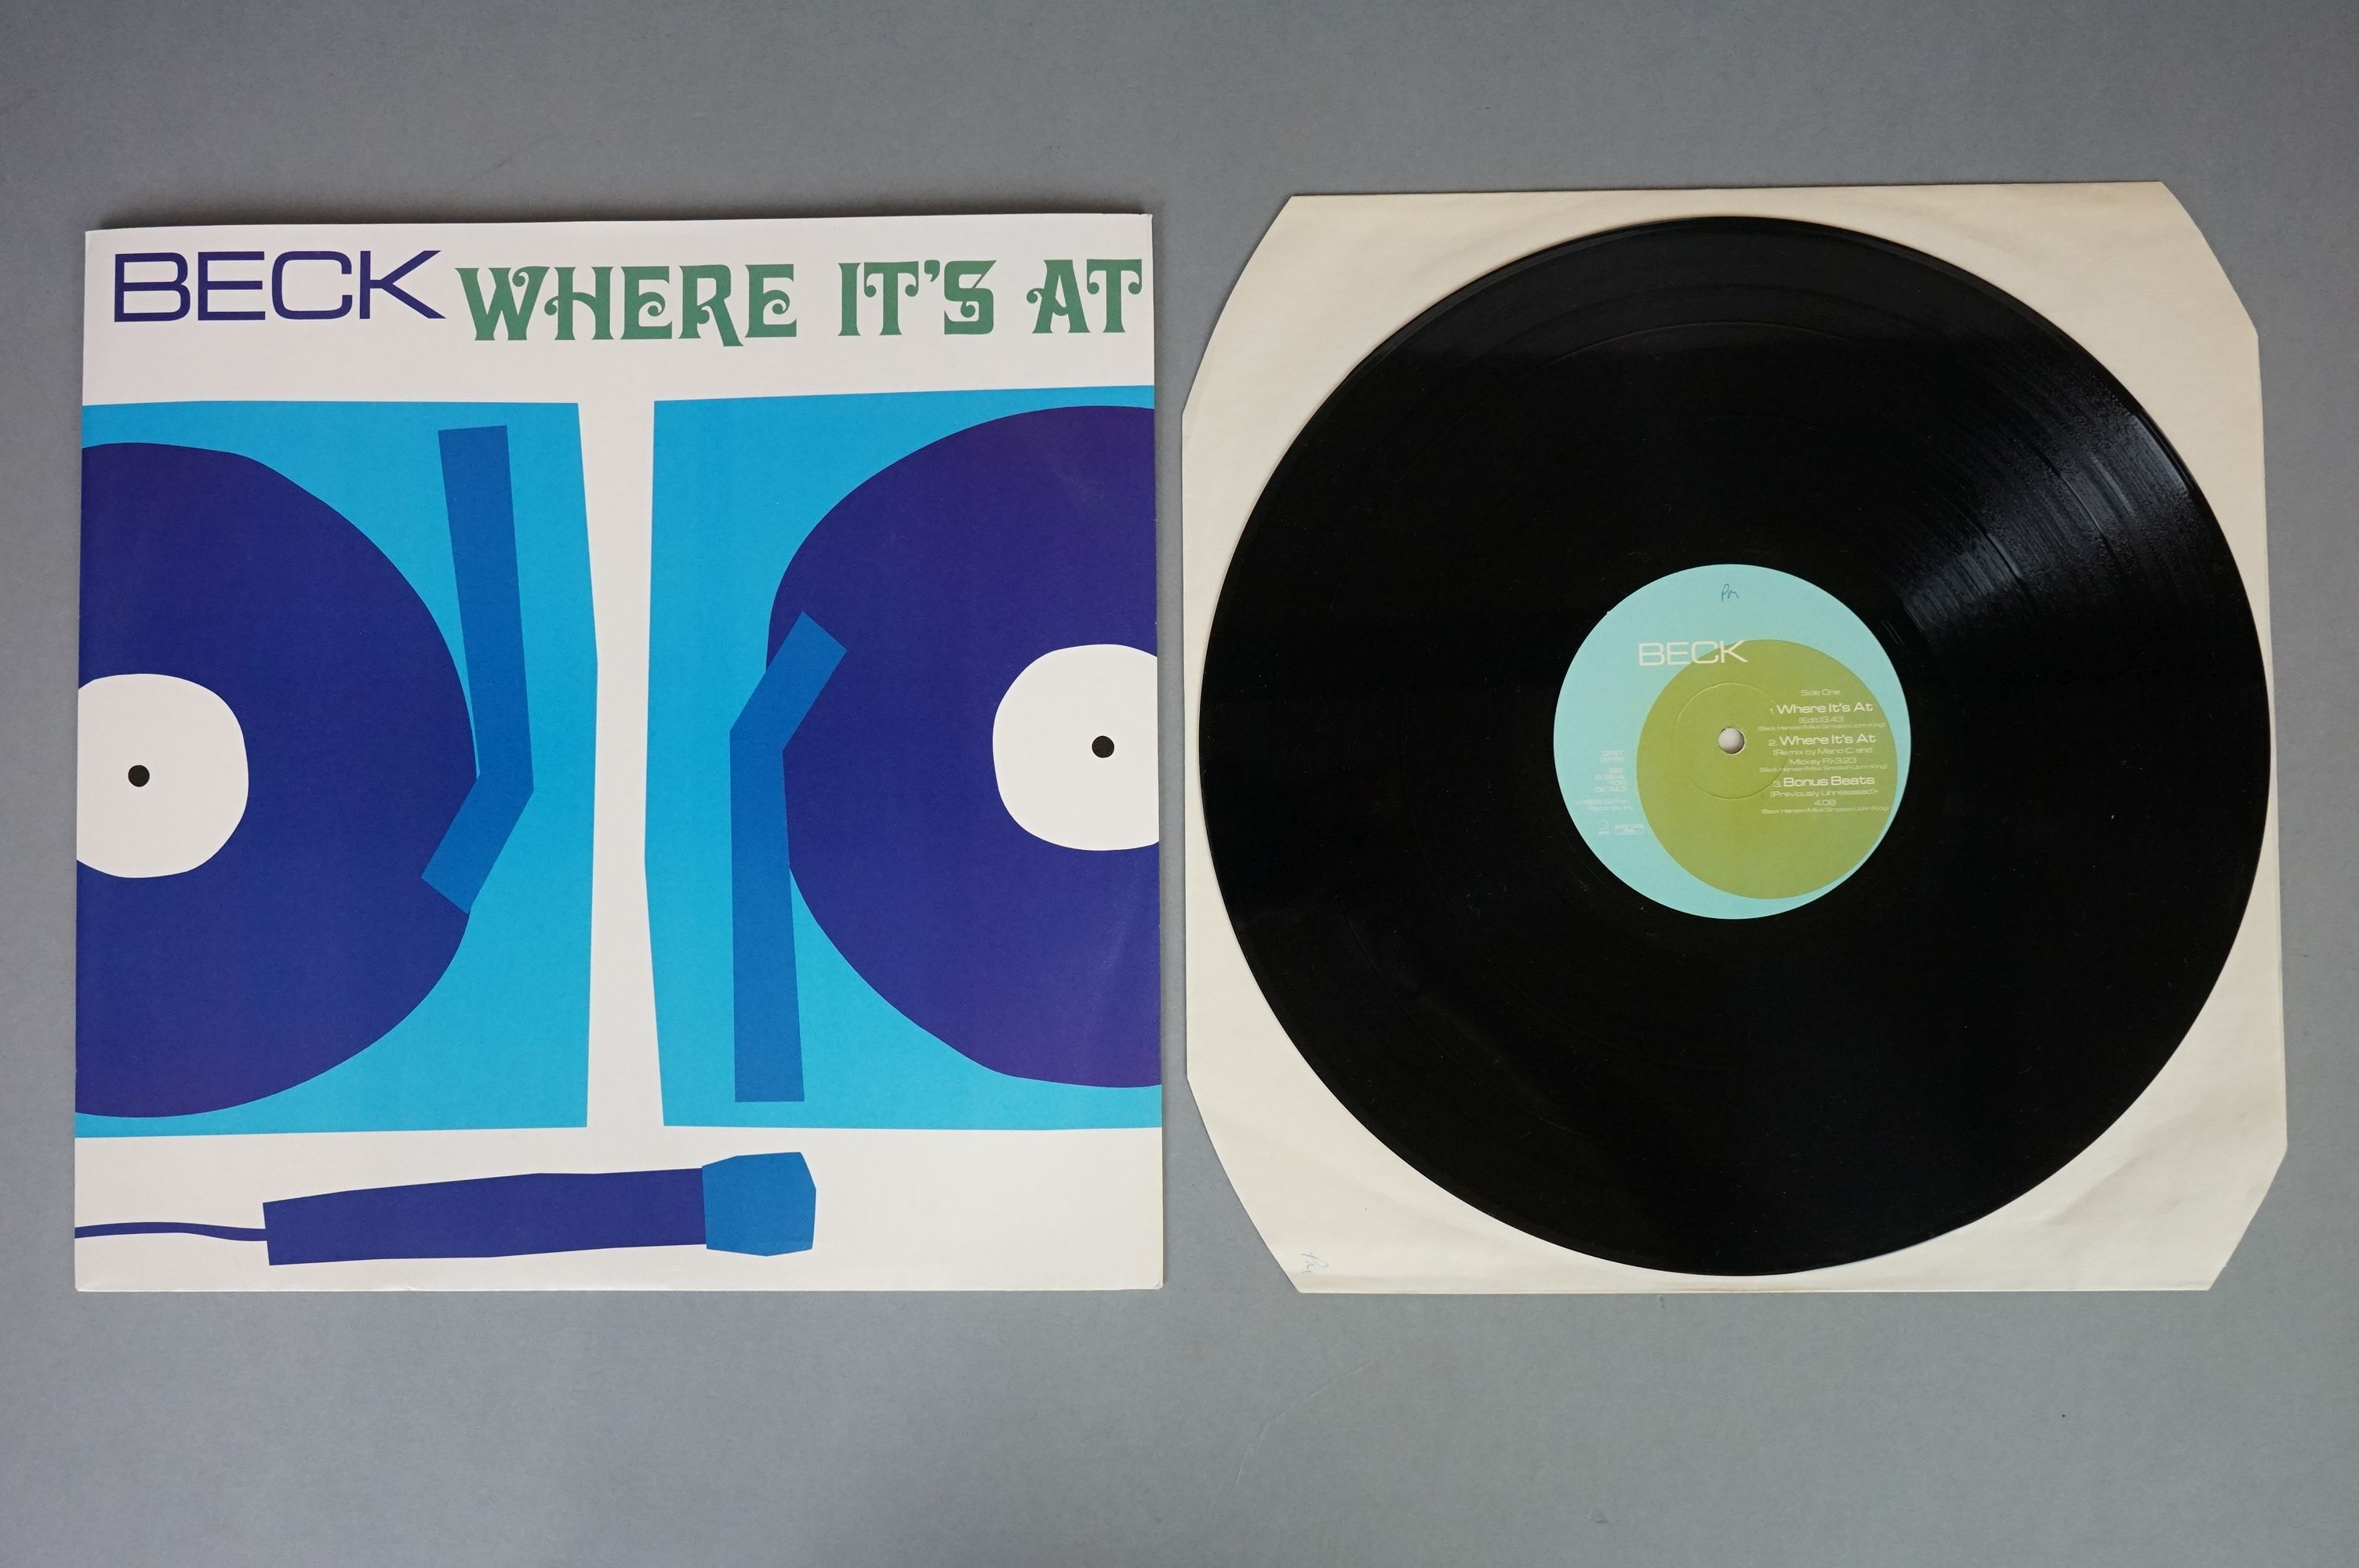 """Vinyl - Beck - Two 12"""" singles to include Loser BL5 and Where It's At, both vg+ with vendor initials - Image 5 of 6"""